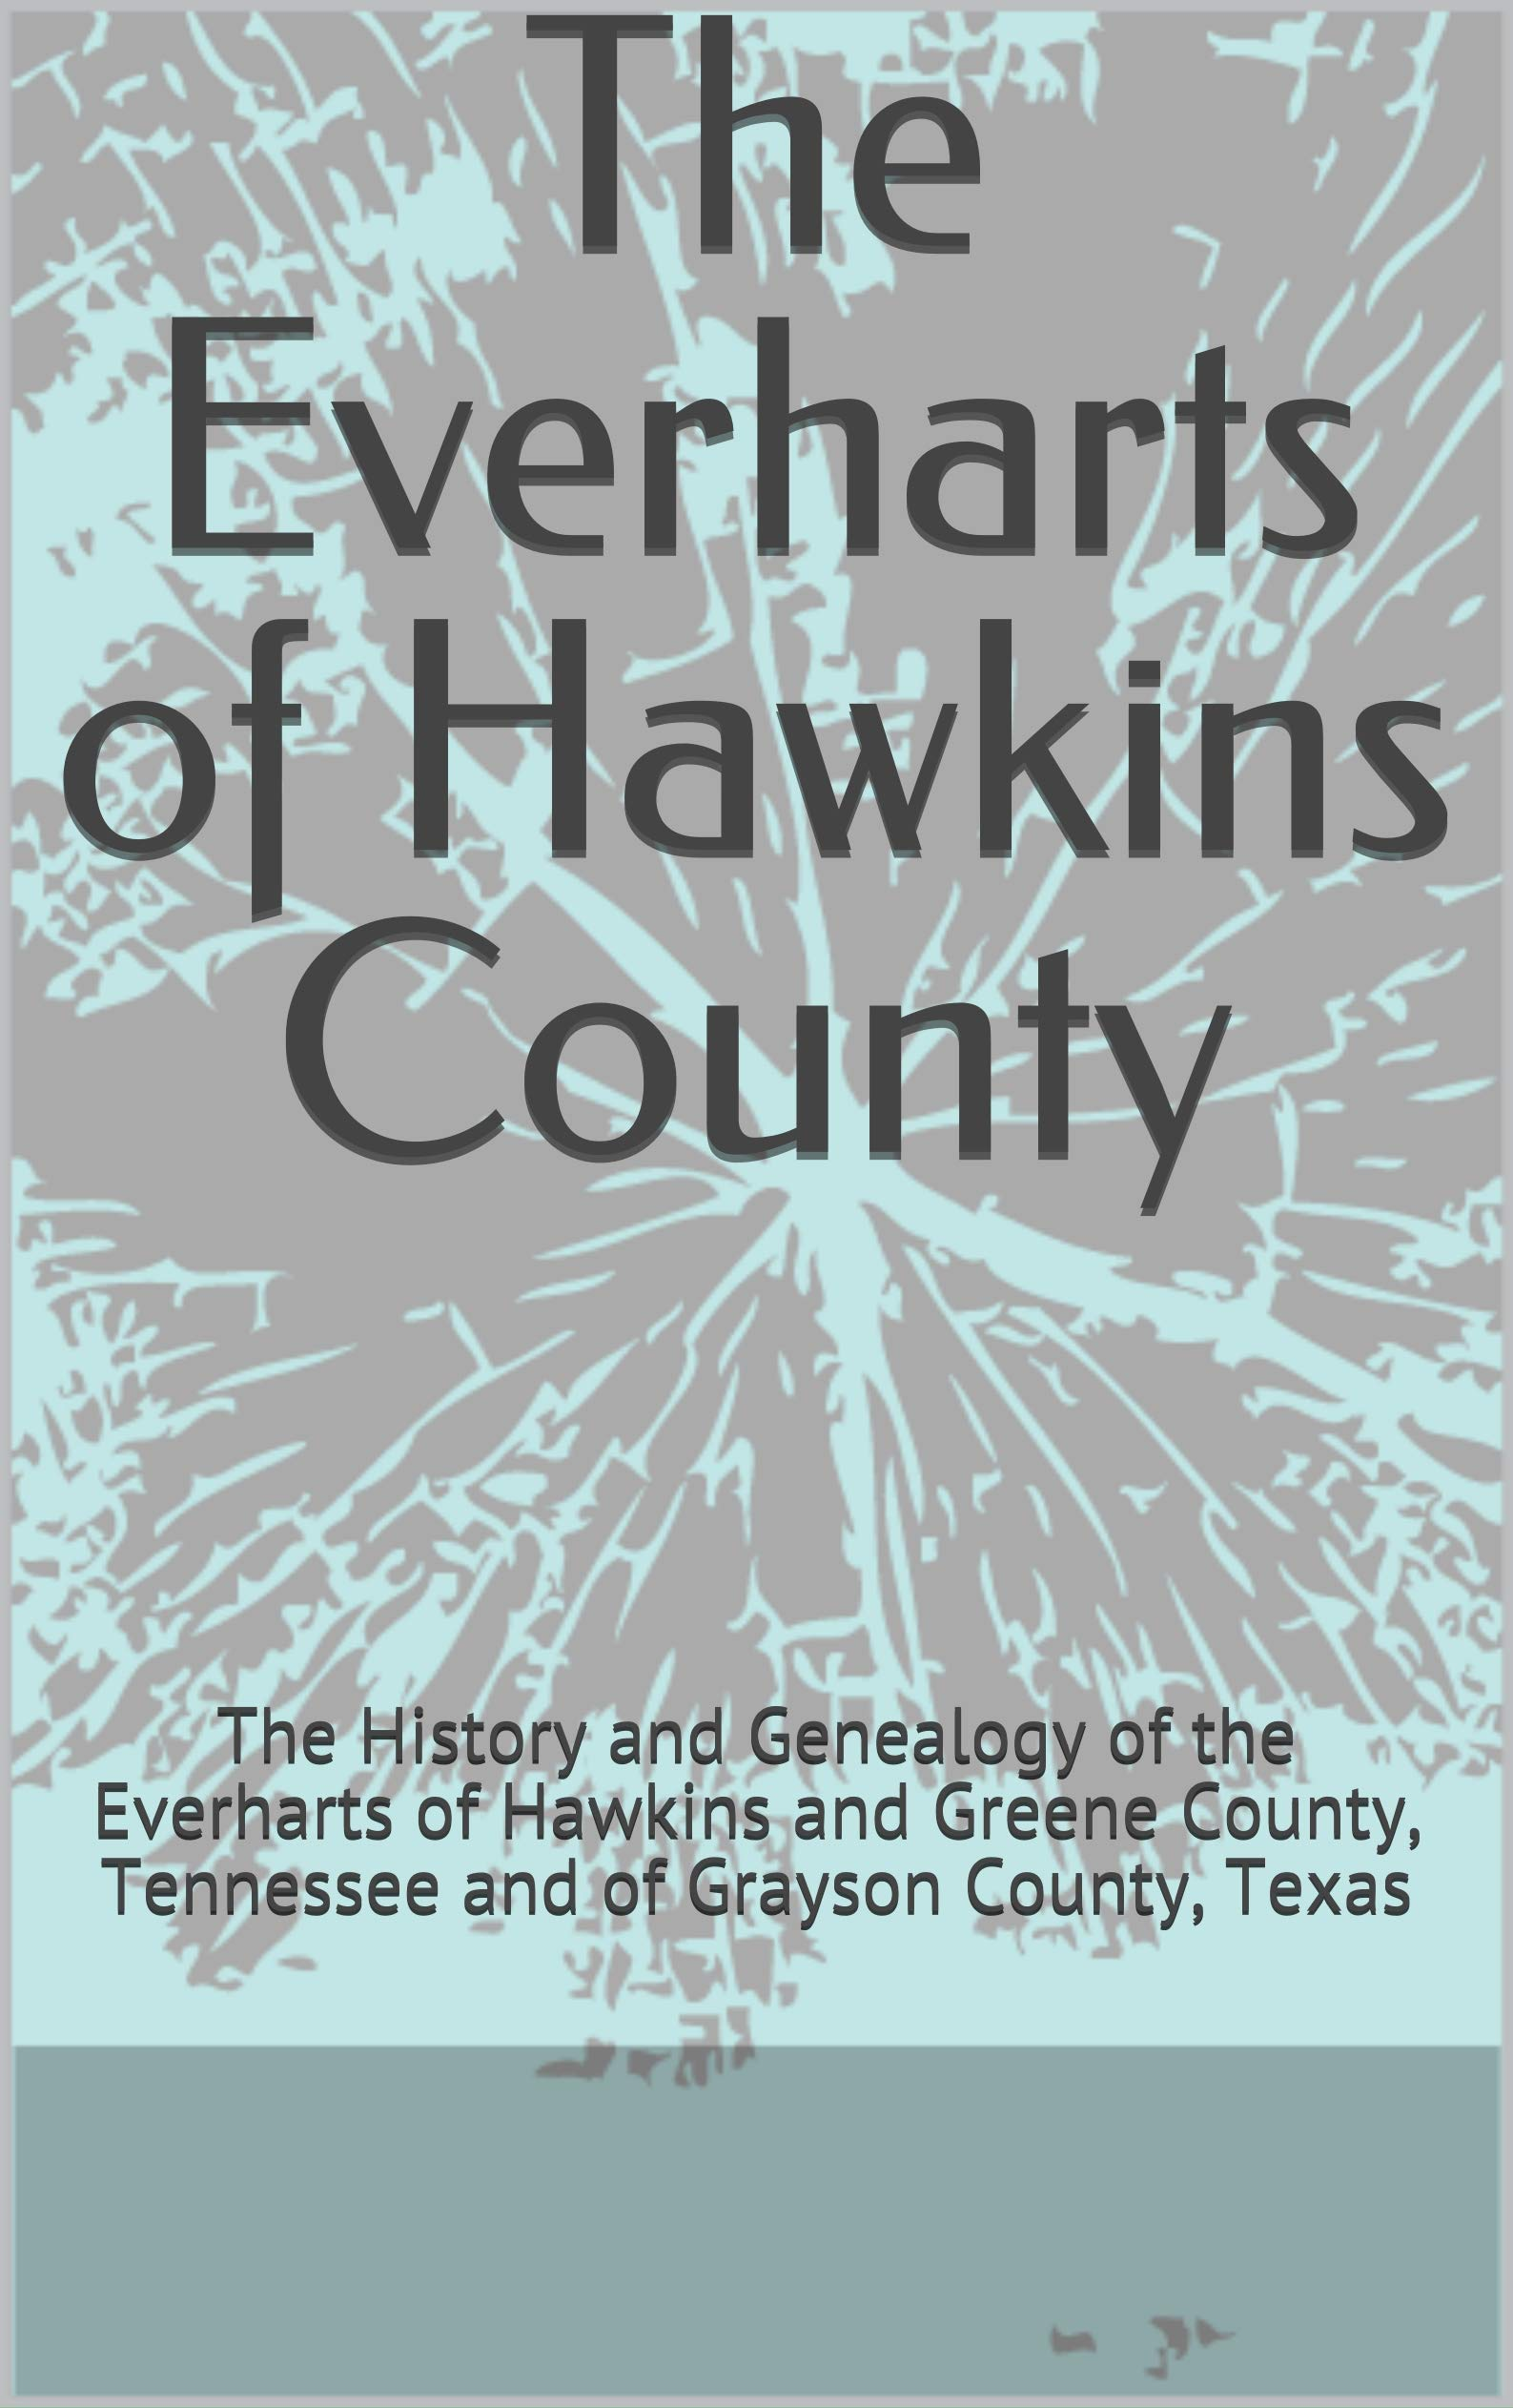 The Everharts of Hawkins County: The History and Genealogy of the Everharts of Hawkins and Greene County, Tennessee and of Grayson County, Texas